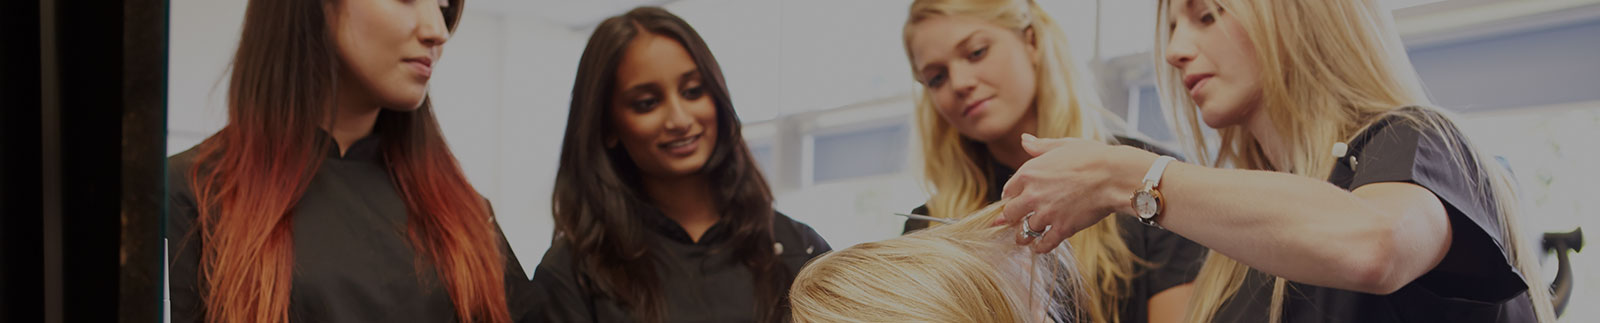 Training the next generation of hair and beauty professionals